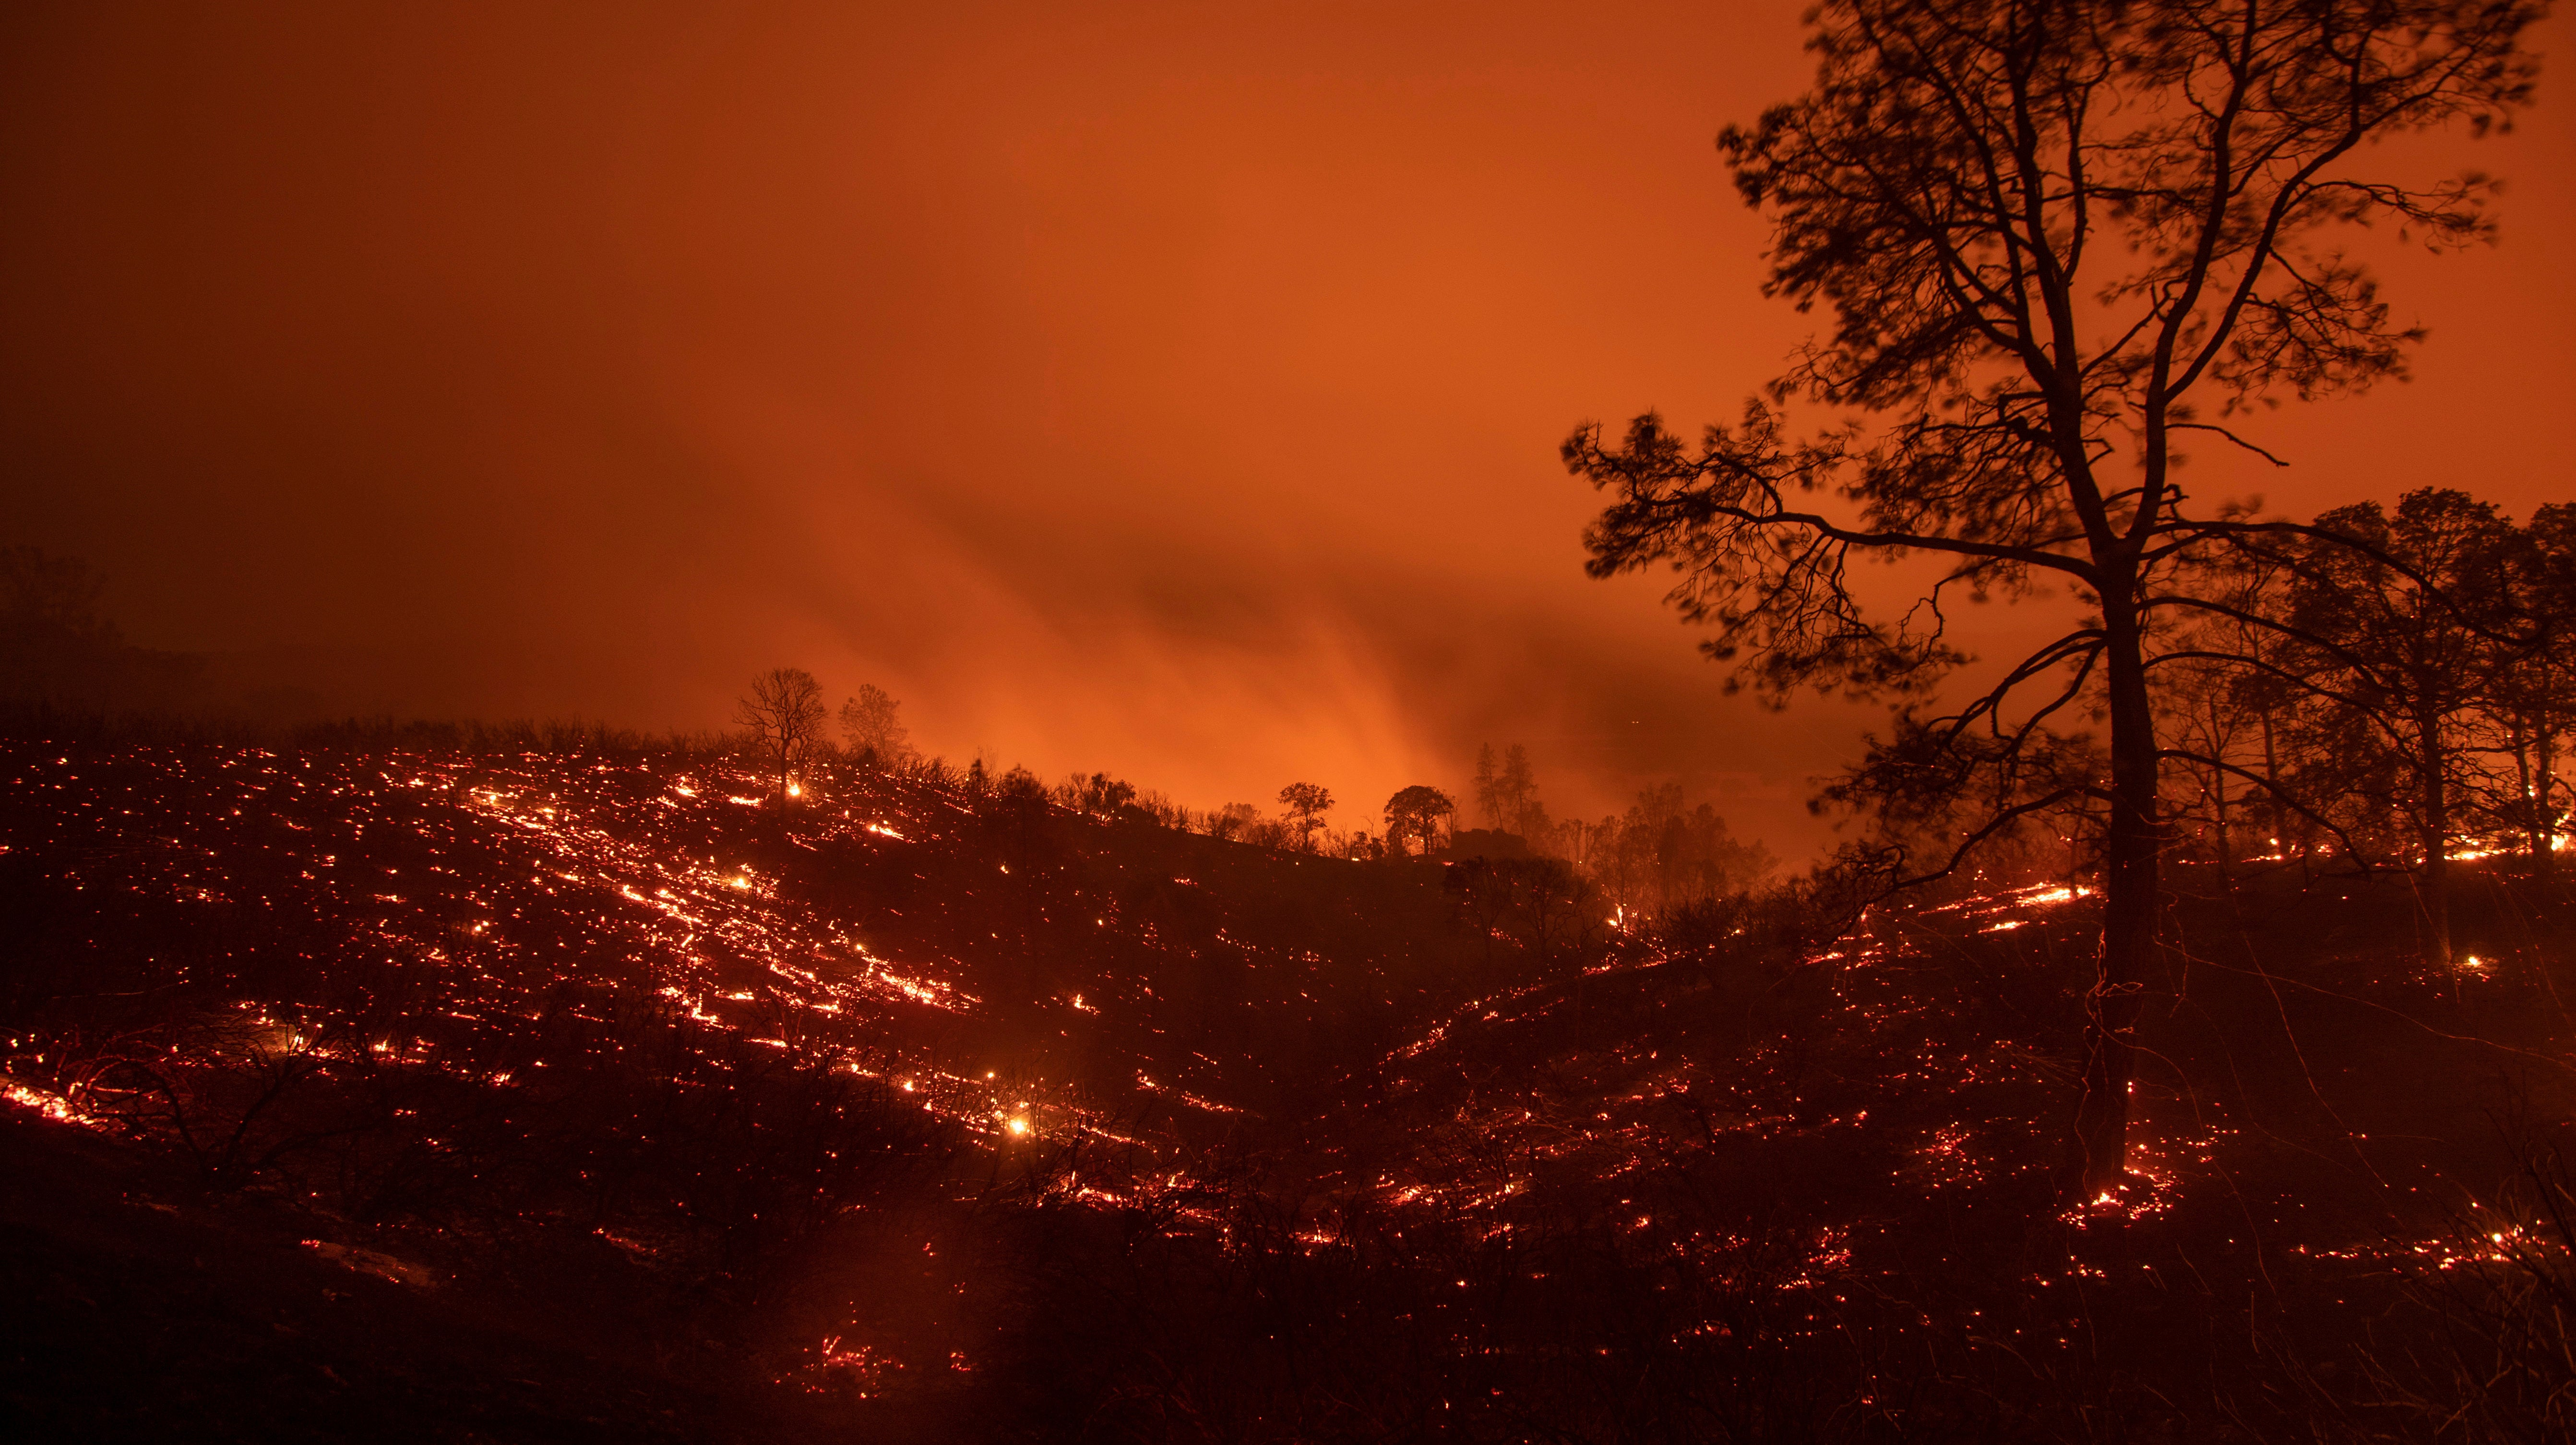 The Mendocino Complex Fire Is Now The Largest In California's History